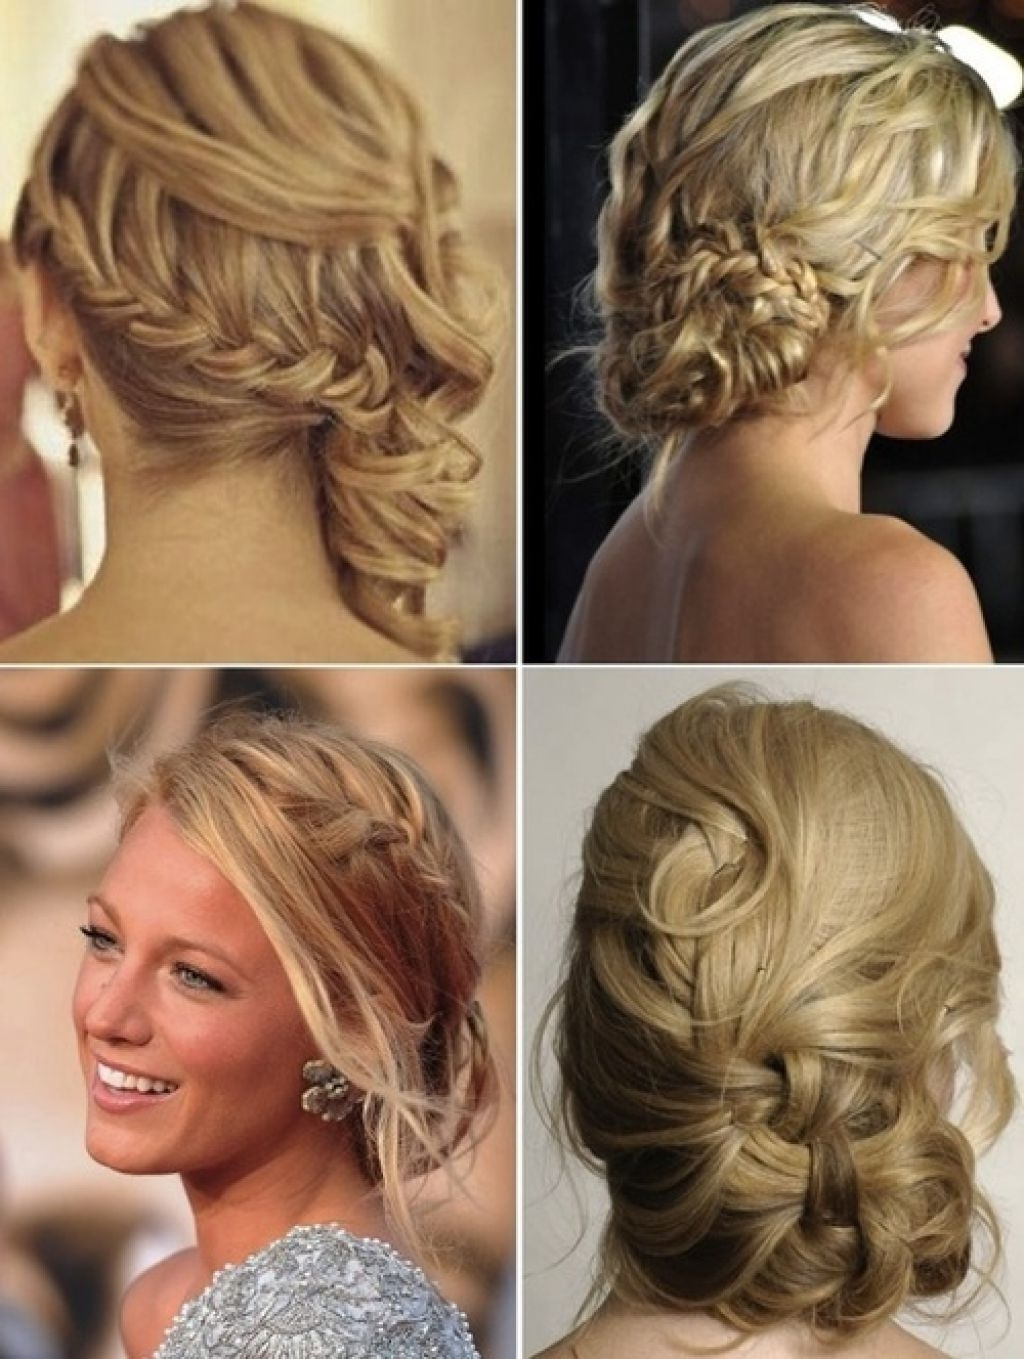 Casual Wedding Hairstyles For Long Hair – Hairstyle For Women & Man Pertaining To Easy Casual Updos For Long Hair (View 4 of 15)